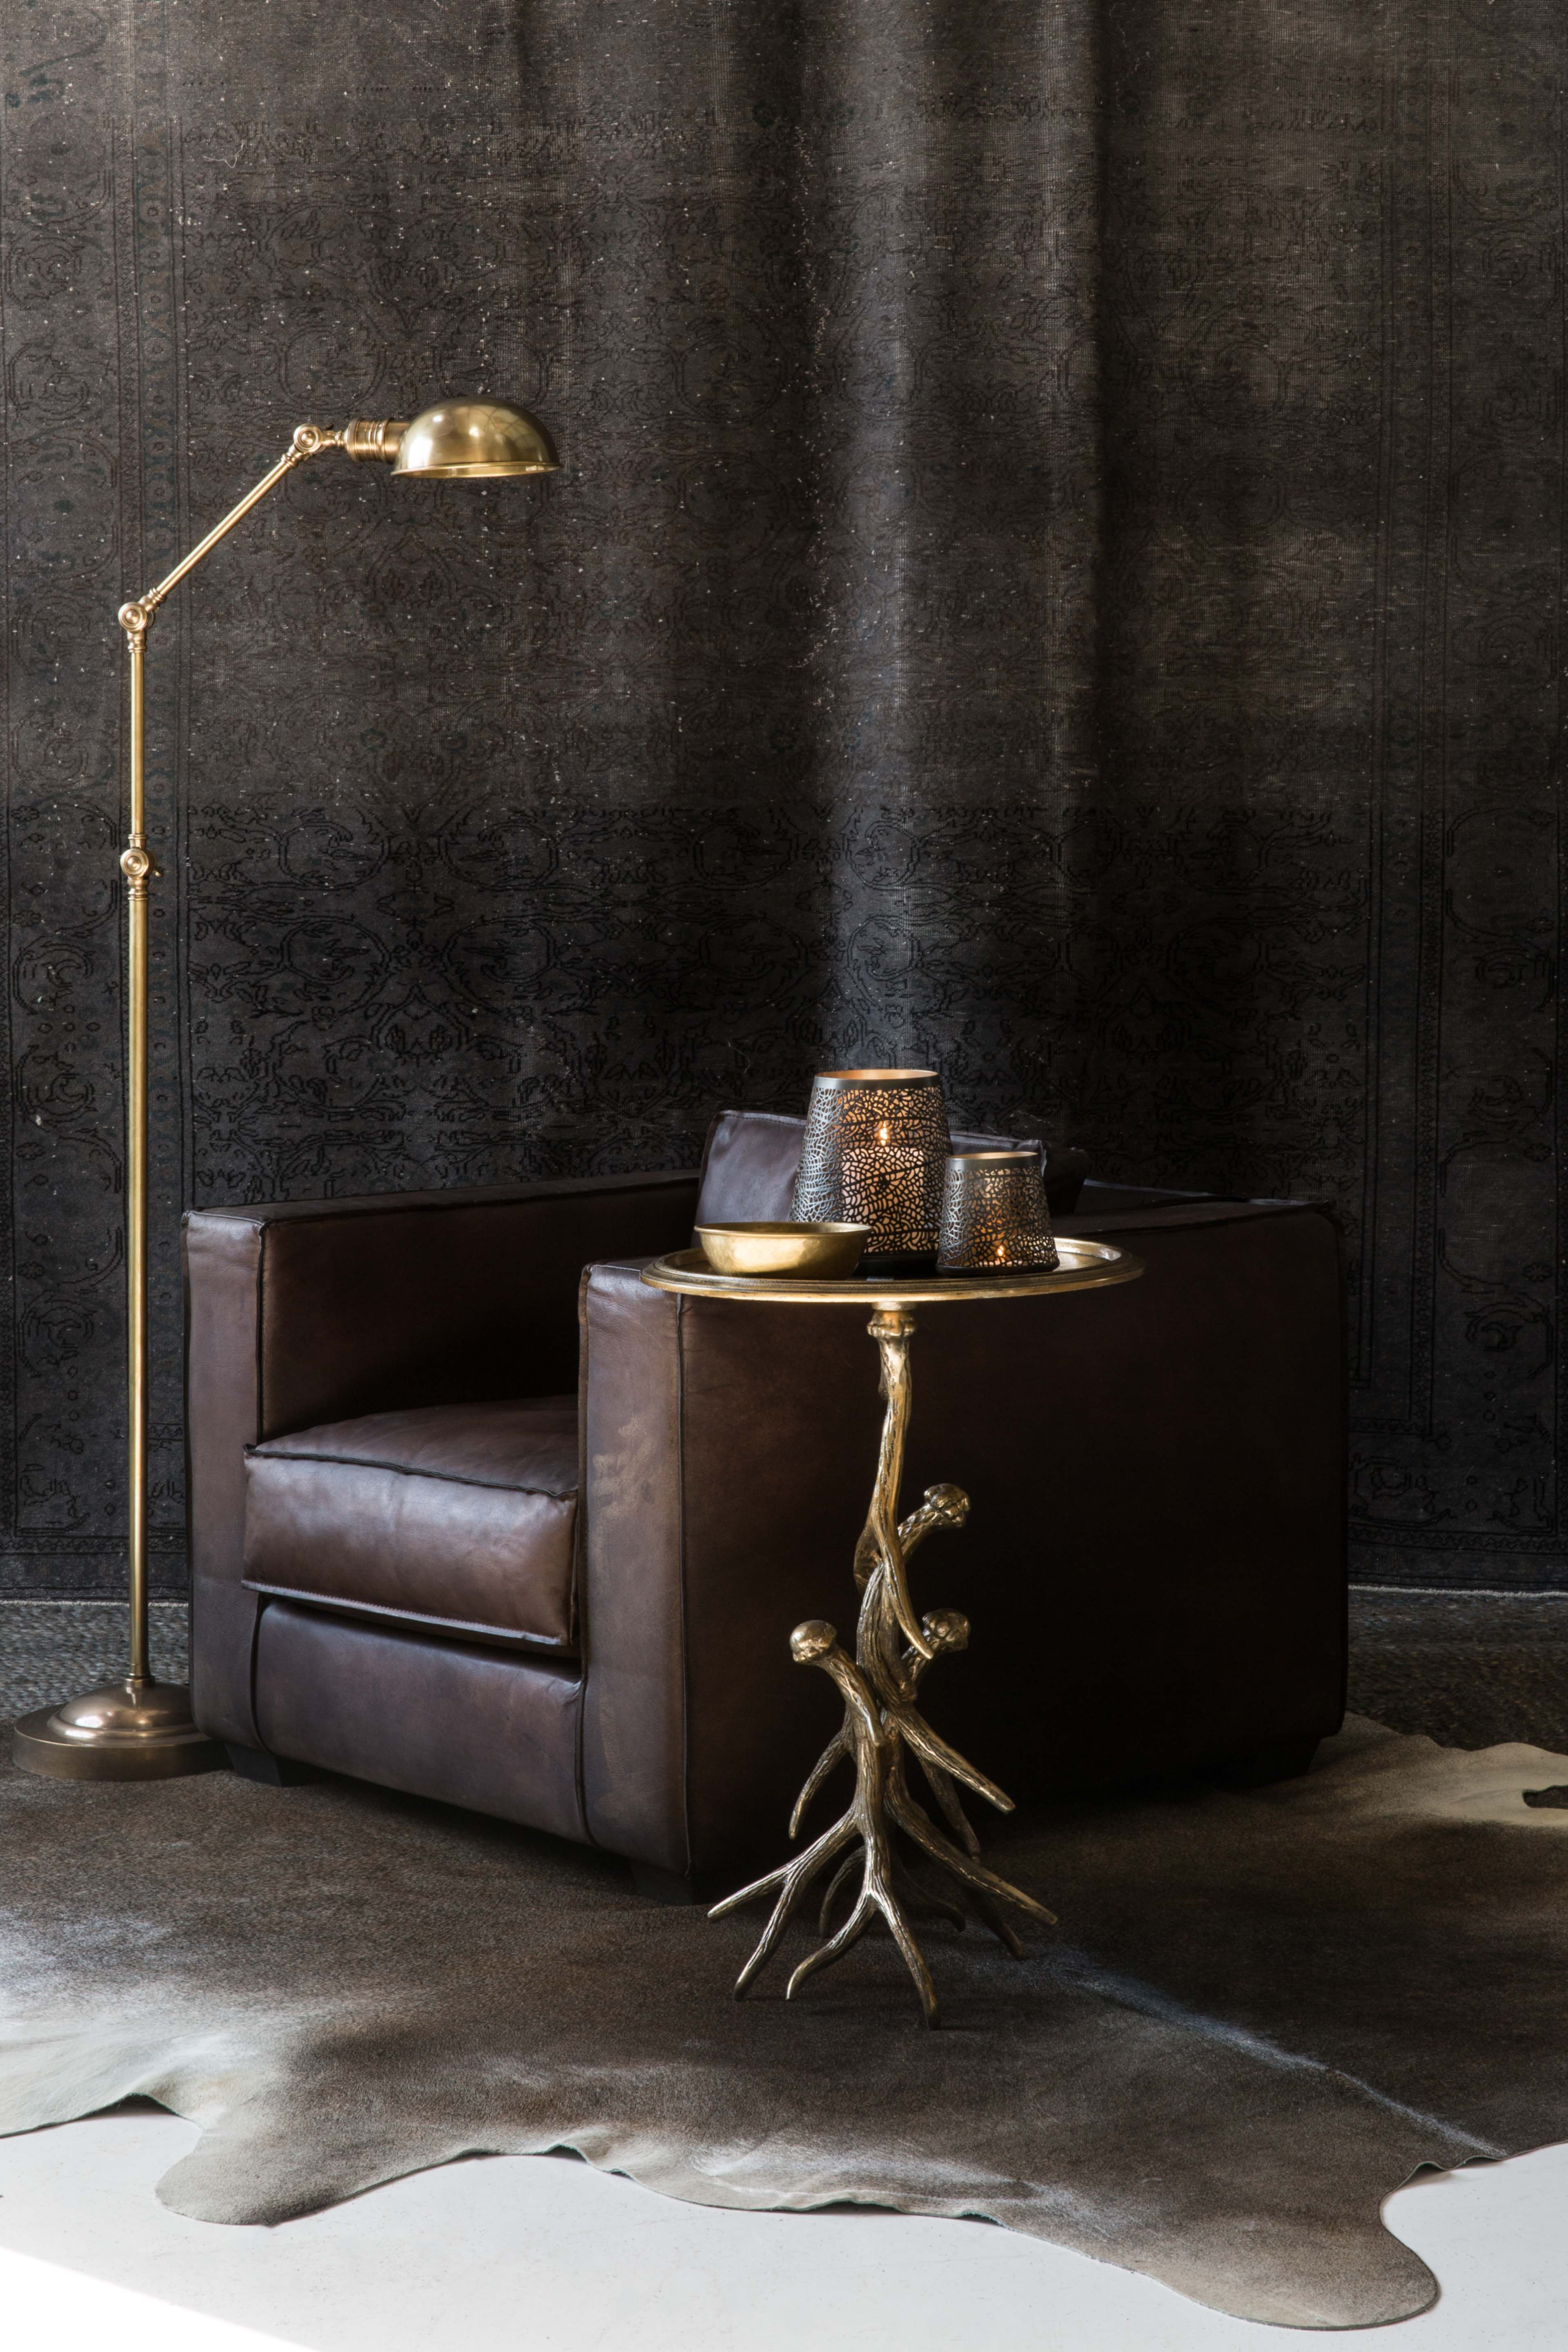 Love the dark tones and touches of